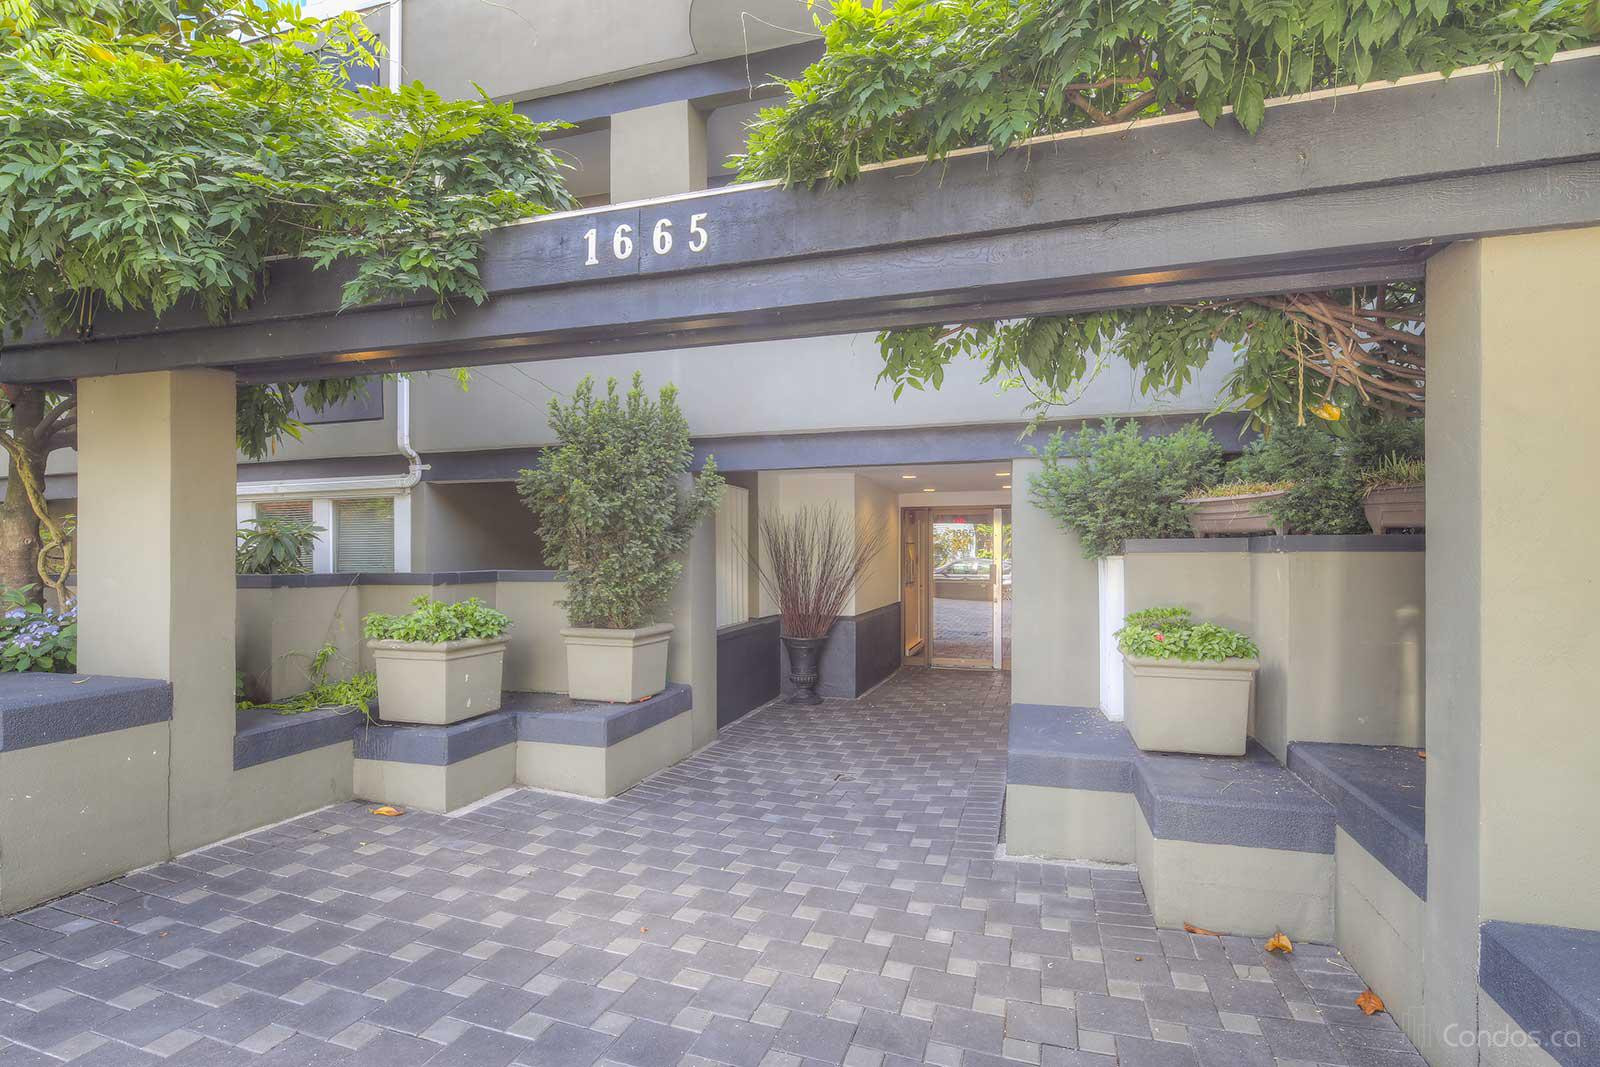 The Beaches at 1665 Arbutus St, Vancouver 0